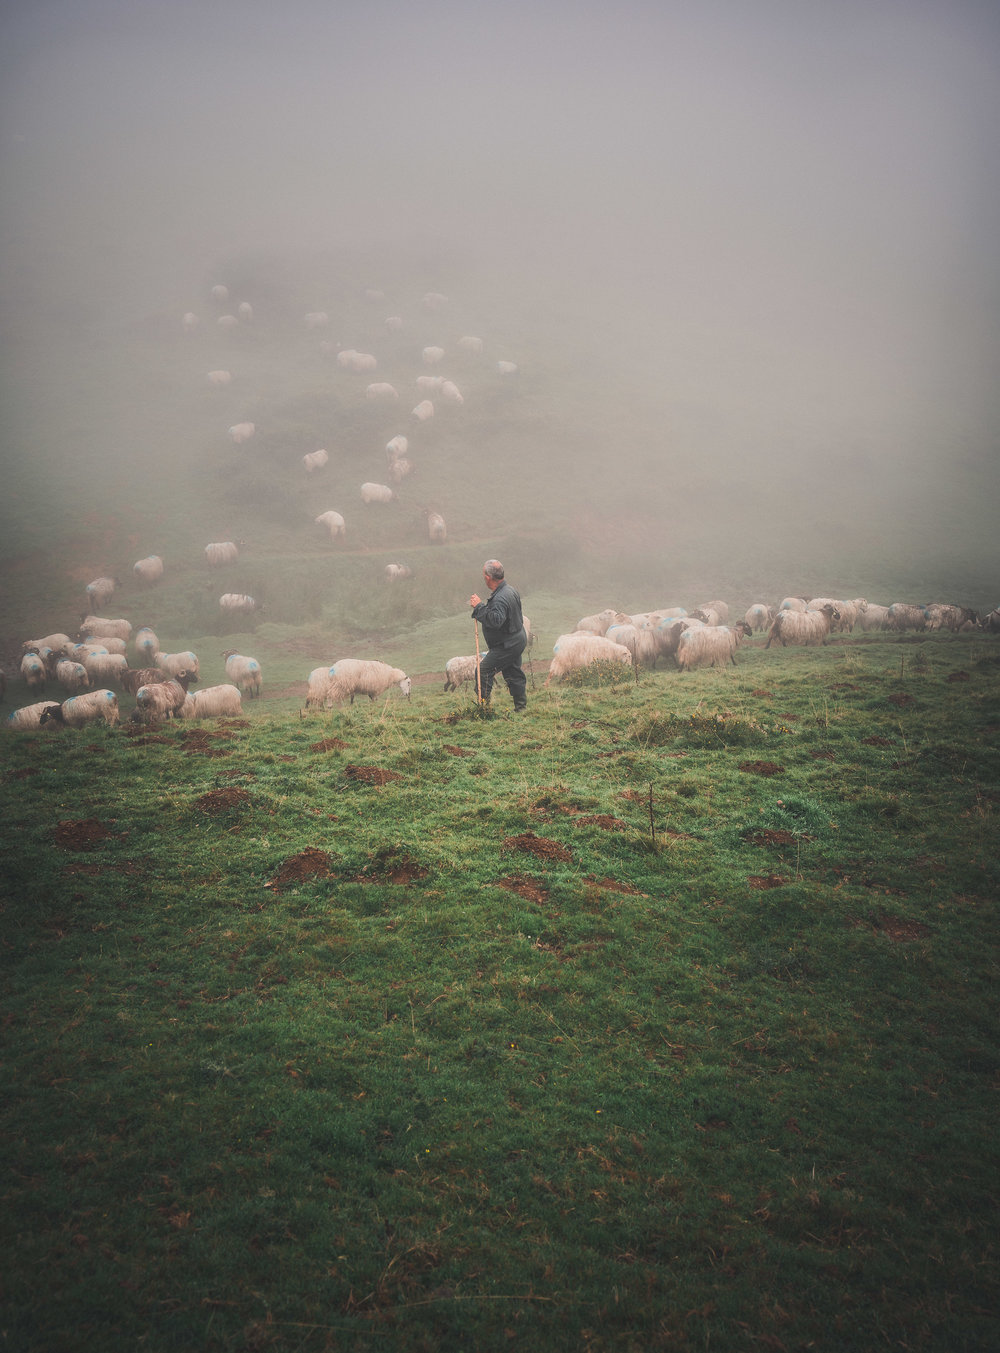 A farmer tends his flock in the early morning